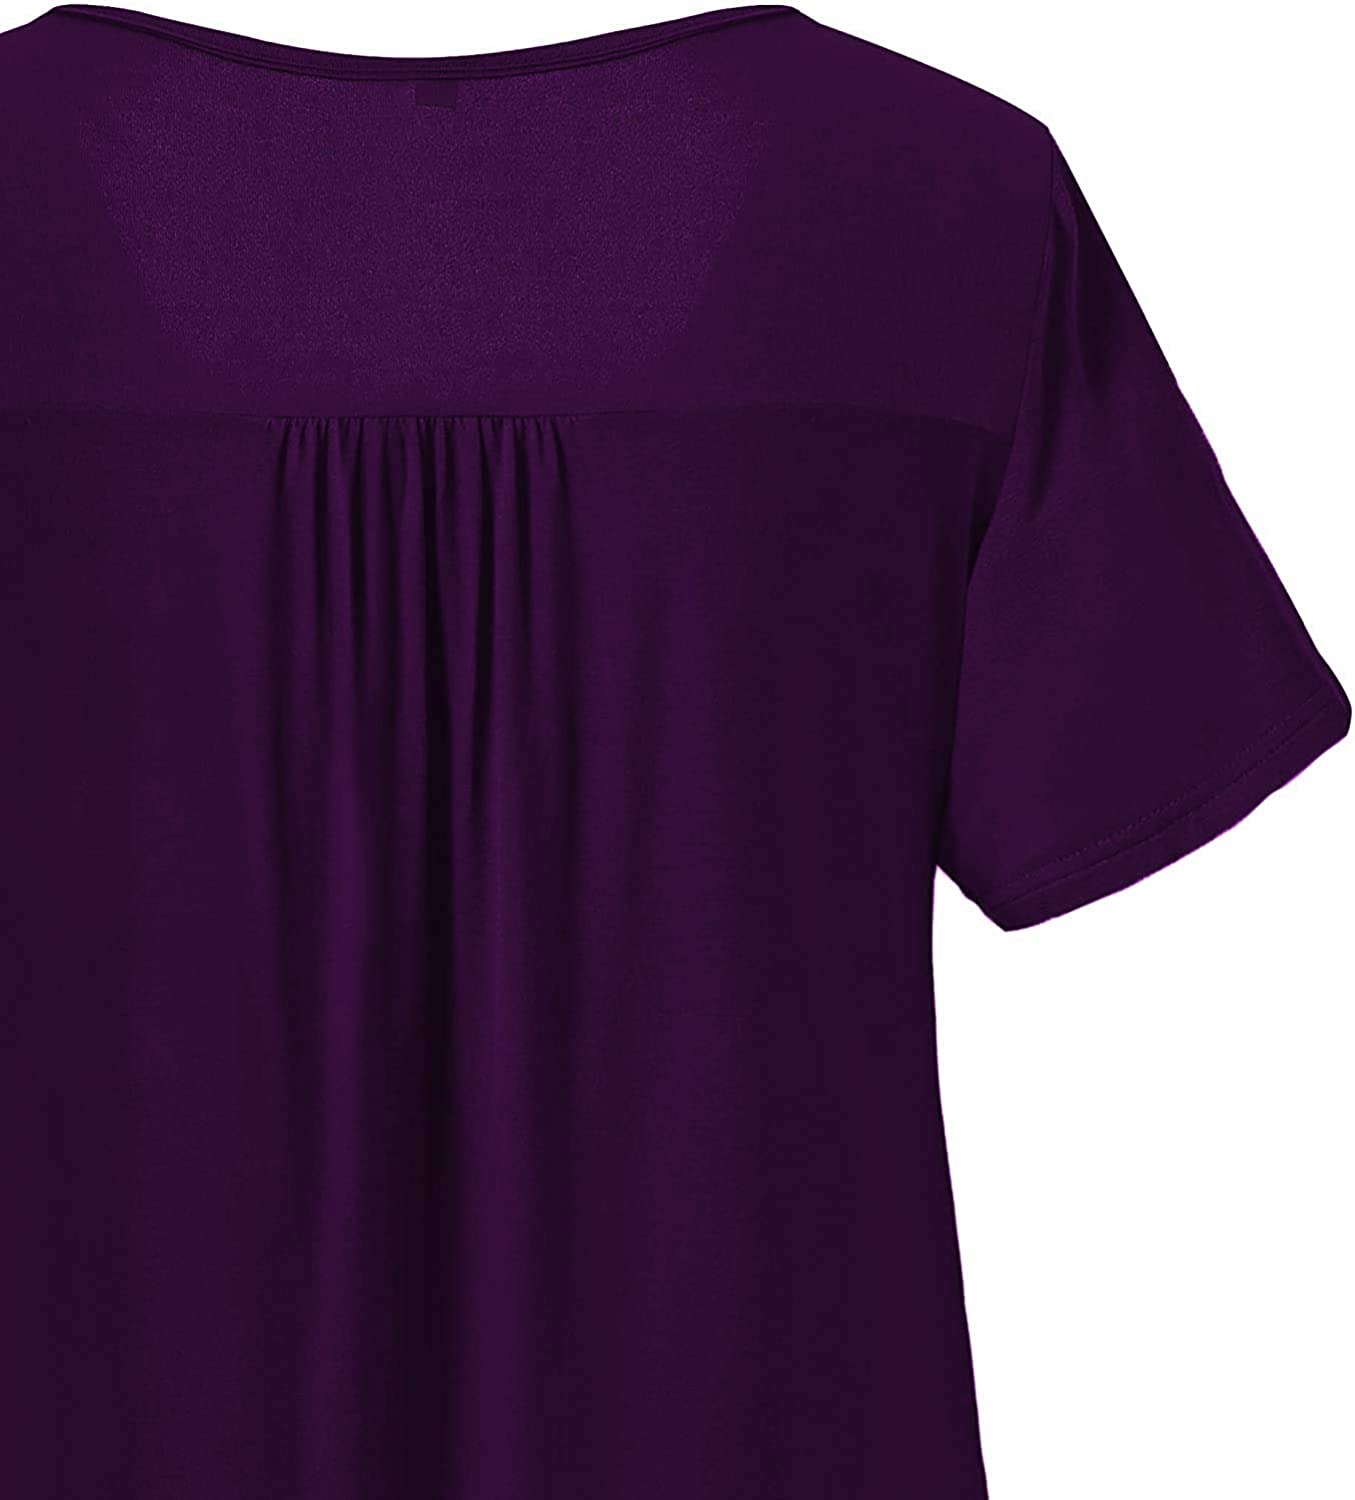 Uusollecy Women Plus Size Short Sleeves Shirts, U Neck Casual Soft Blouse, Loose Lace Shirt Tunic Tops